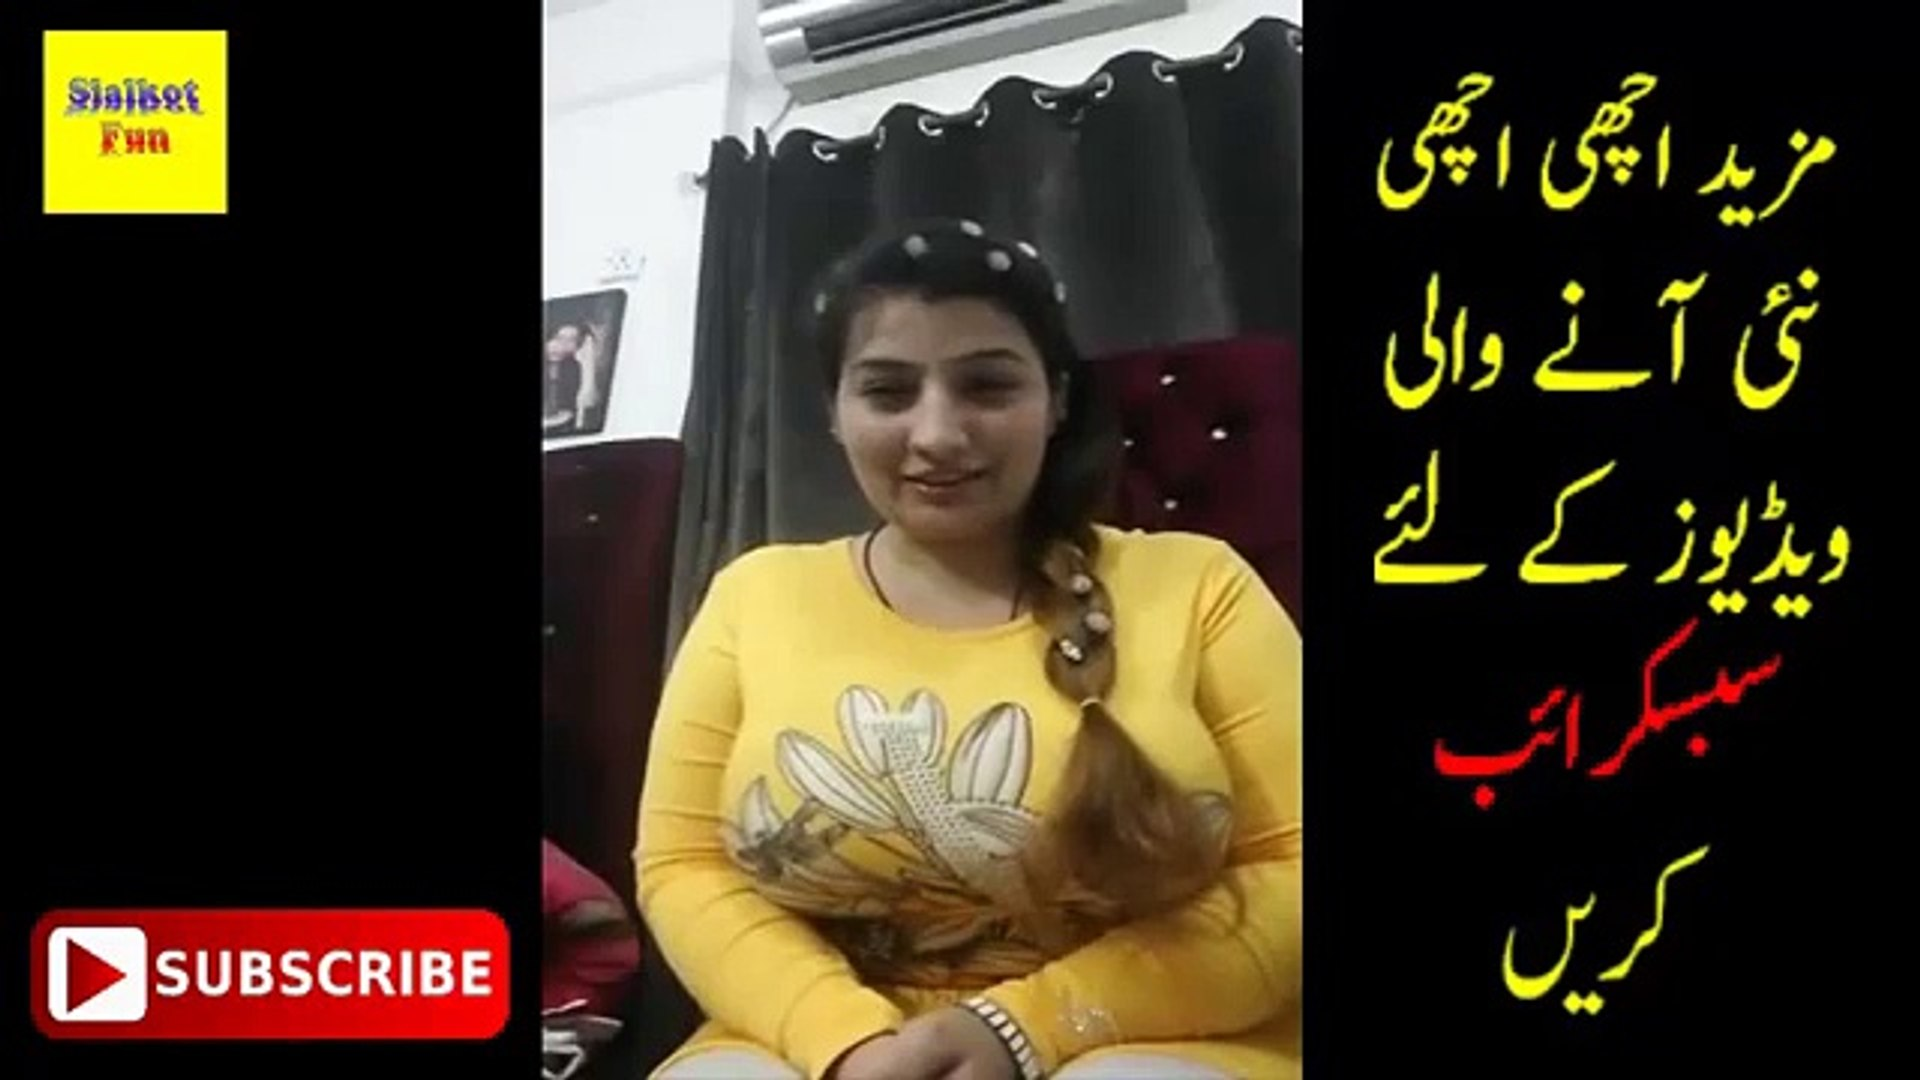 sitara baig _facebook live _ bigo live video _sialkot fun #3